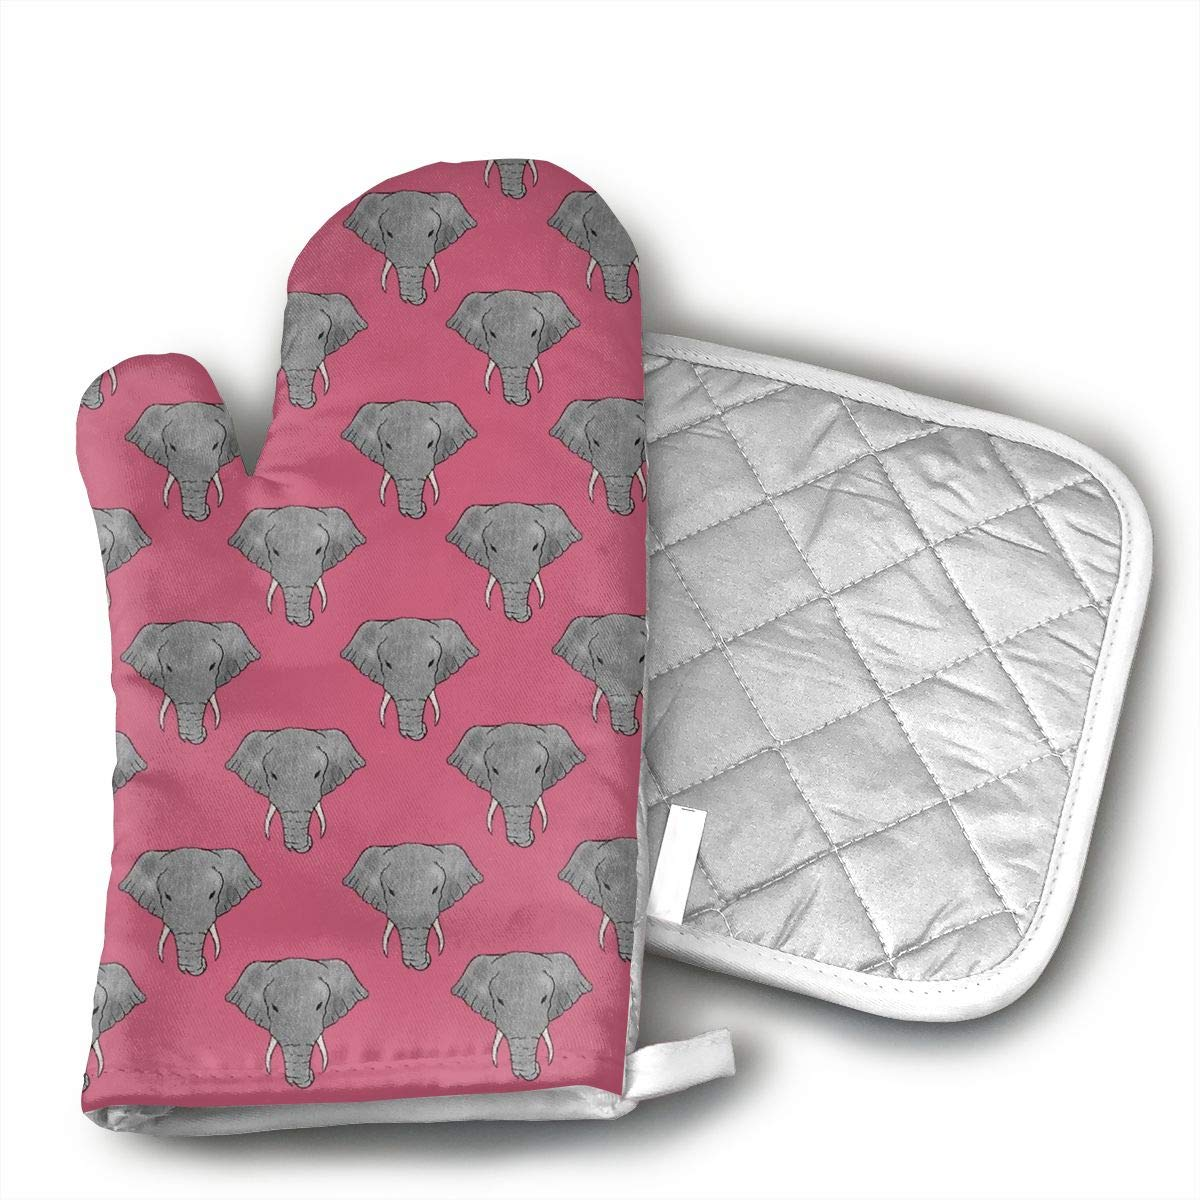 QEDGC Elephant Head Pink Grill Oven Gloves ¨C Heat Resistant Gloves ¨C BBQ Gloves for Cooking, Grilling, Baking